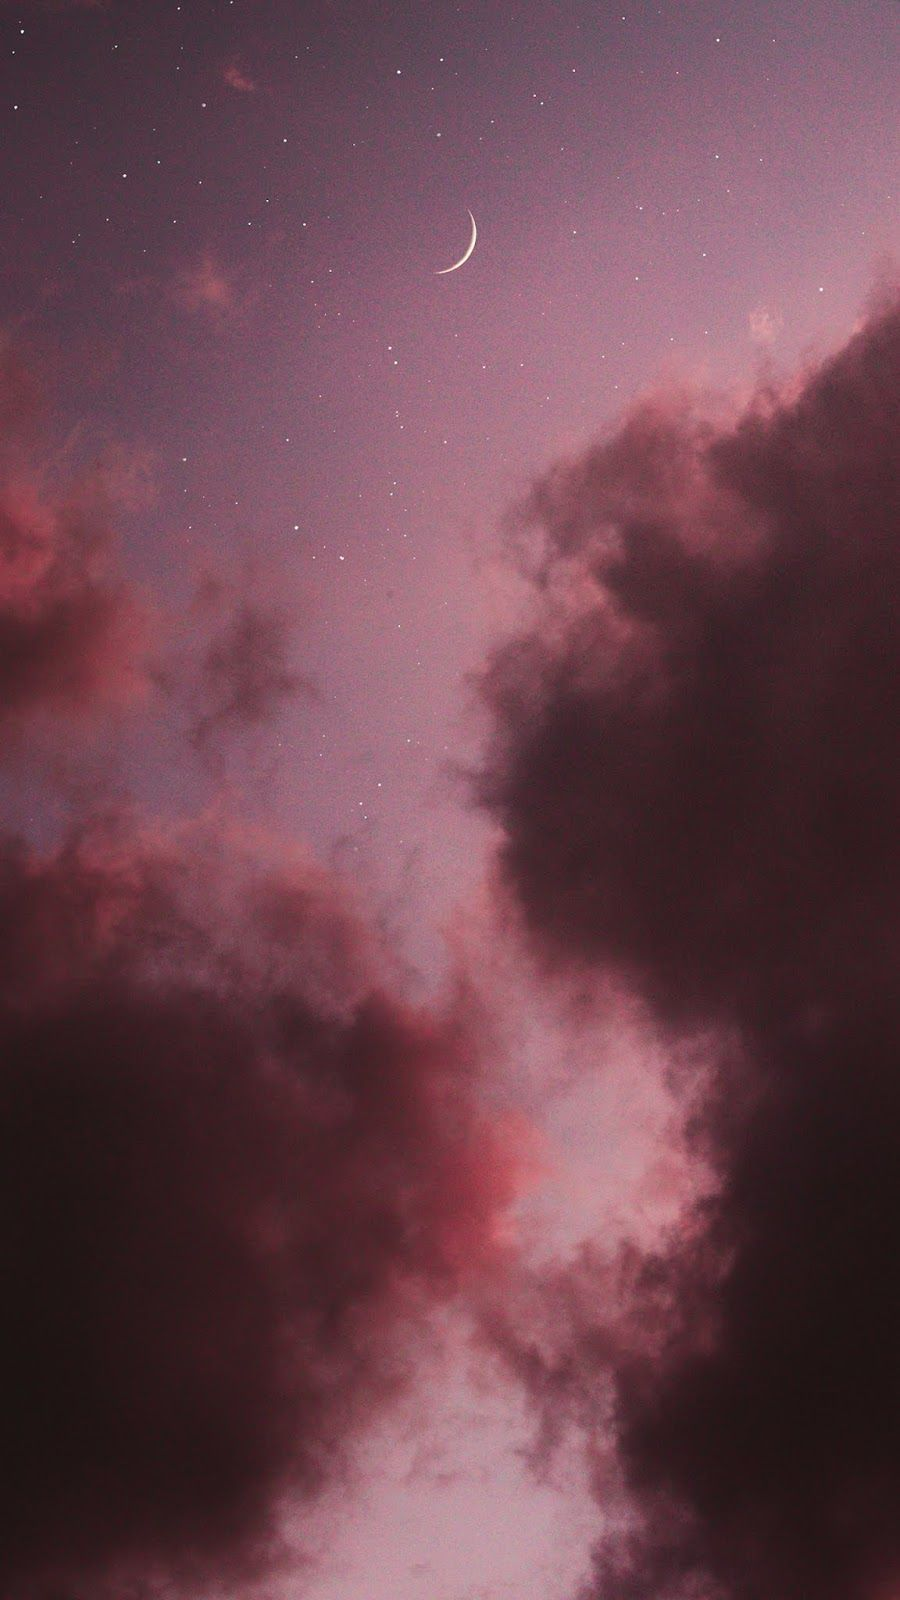 Aesthetic Moon Great Pretty Wallpapers Pretty Wallpapers Aesthetic Iphone Wallpaper Iphone Wallpaper Vintage